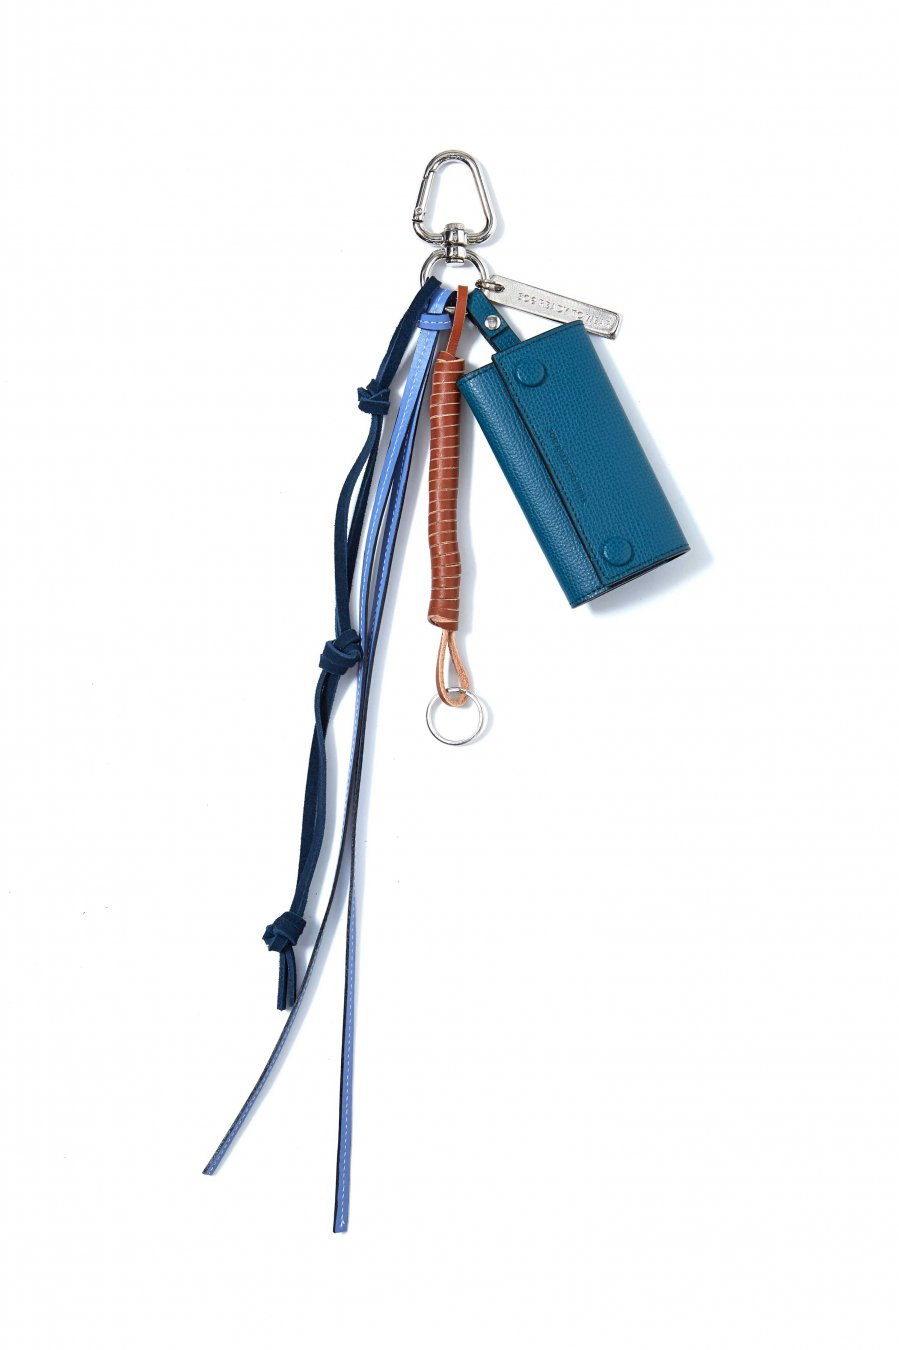 soe  Key Ring With Leather Strap(BLUE)<img class='new_mark_img2' src='https://img.shop-pro.jp/img/new/icons15.gif' style='border:none;display:inline;margin:0px;padding:0px;width:auto;' />